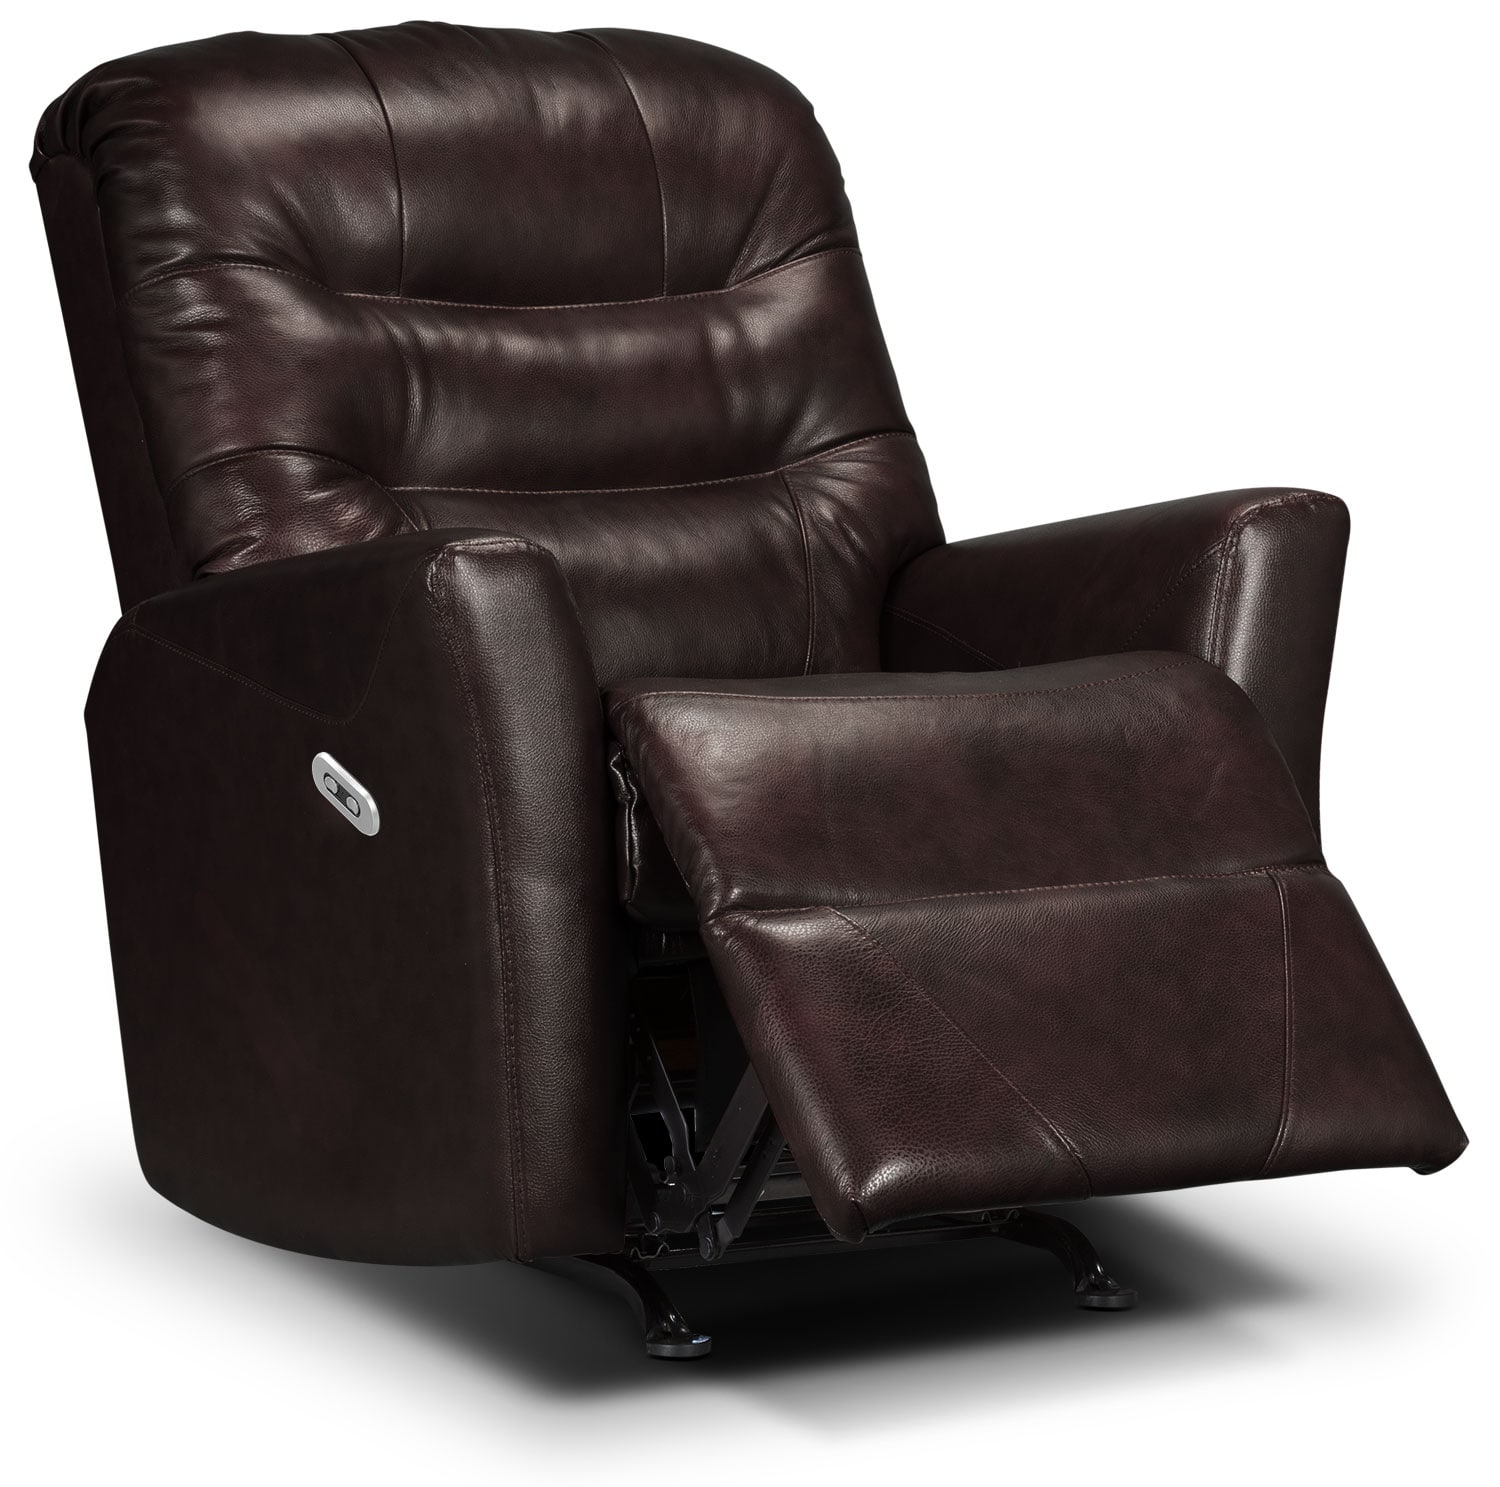 Designed2B Recliner 4560 Bonded Leather Power Recliner - Chocolate